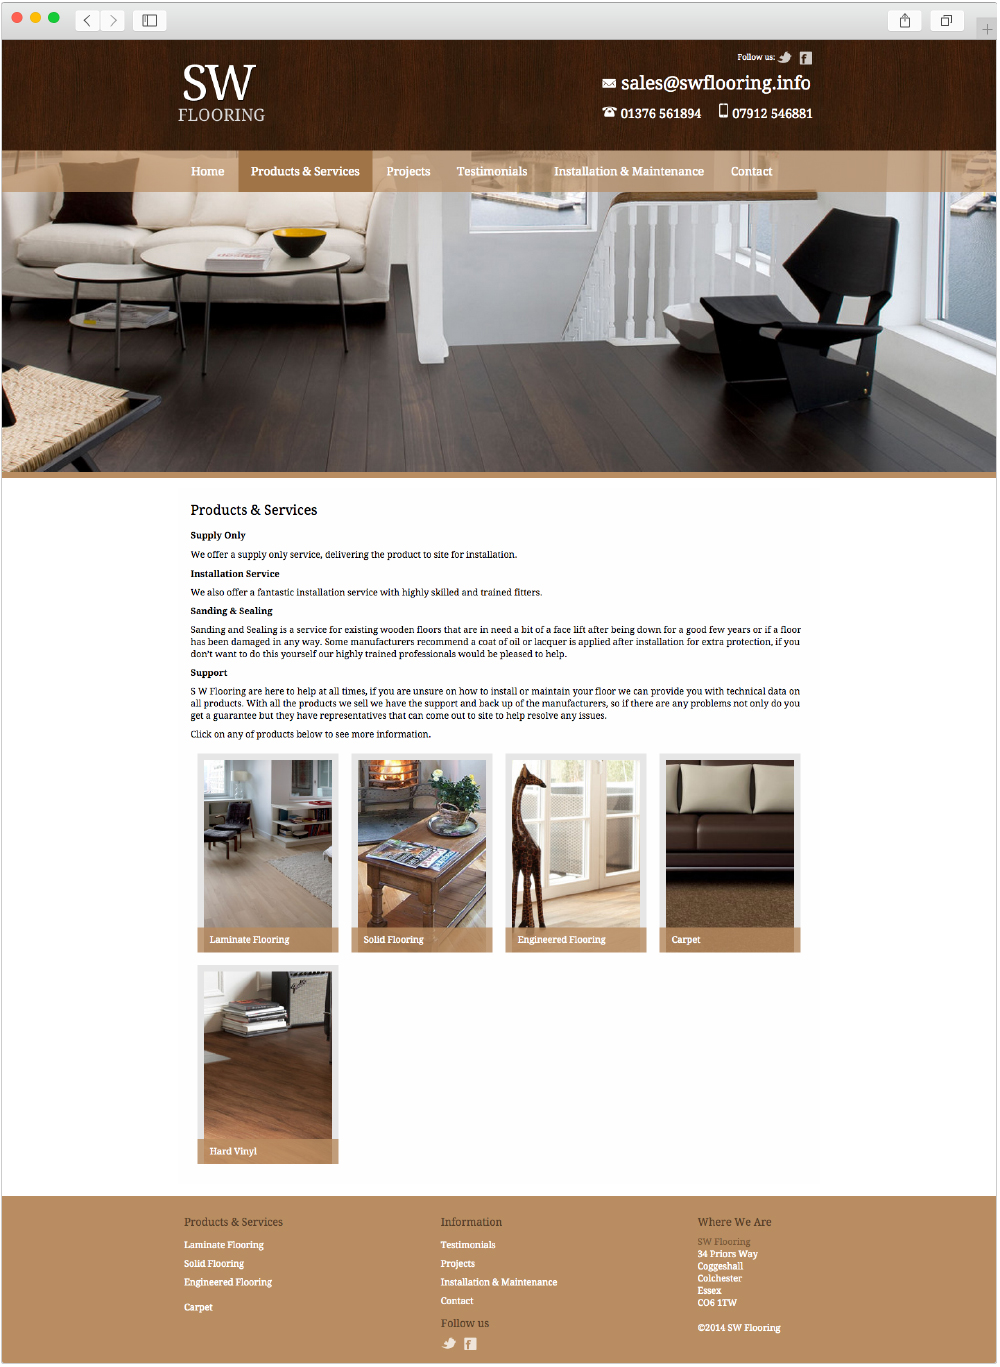 SW Flooring product page design by Studio Link 11